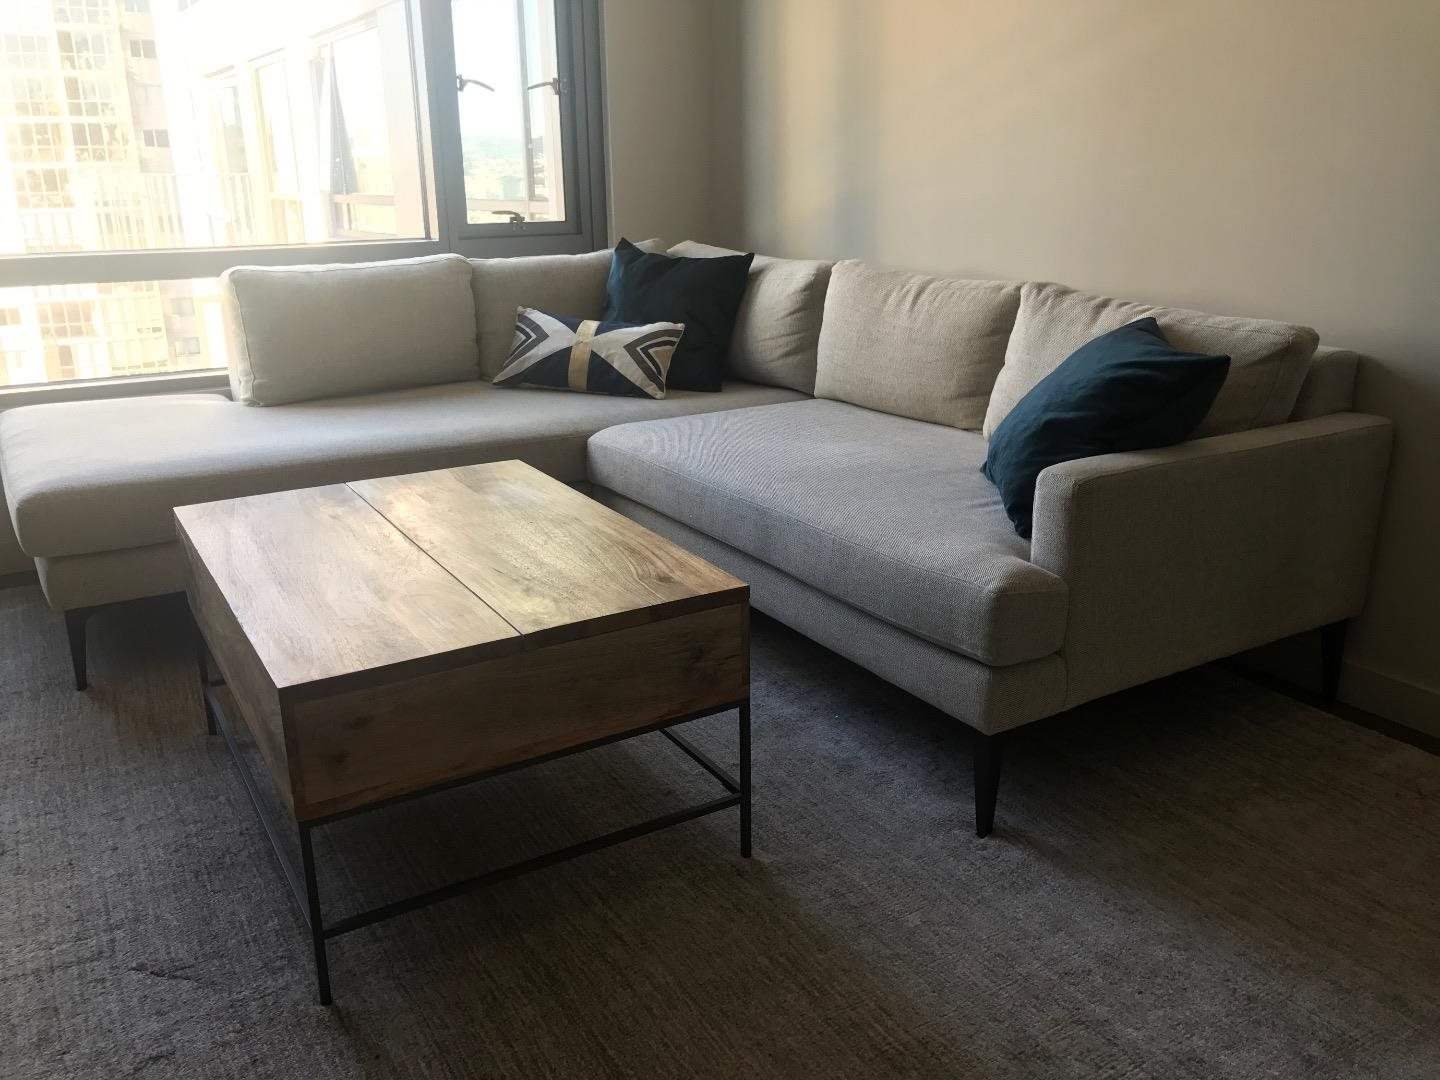 west elm dunham sofa reviews designer slipcovers for sofas 2019 popular sectional andes terminal chaise couch sale in san throughout well liked